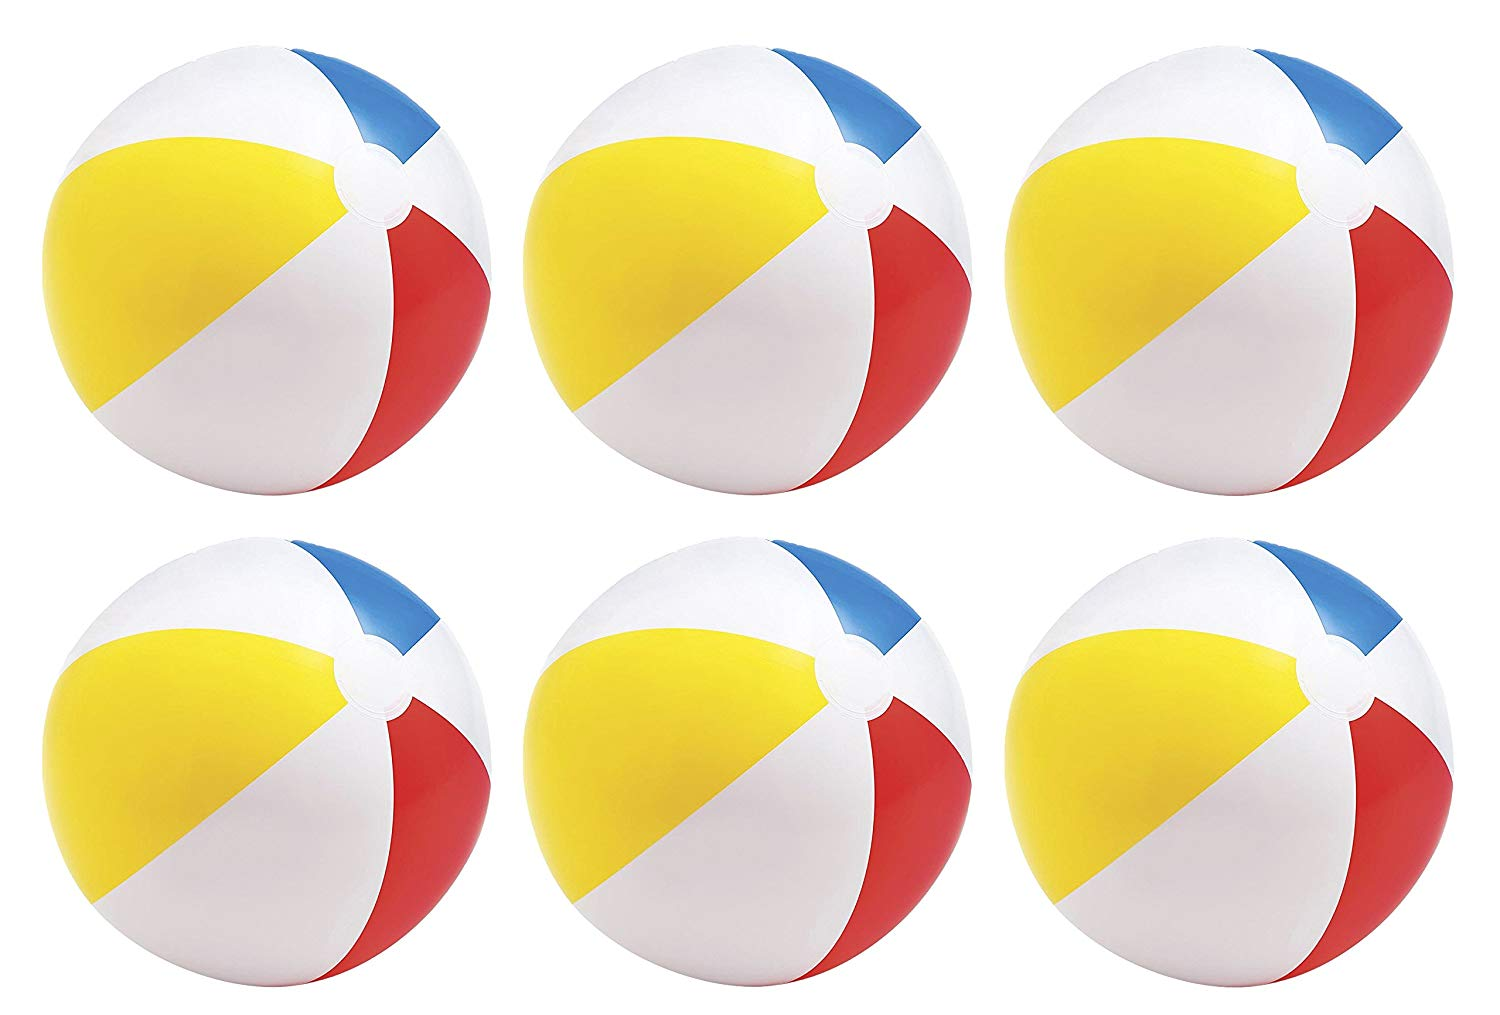 "Intex Glossy Panel Colorful Beach Ball, 20"", 6 Pack"